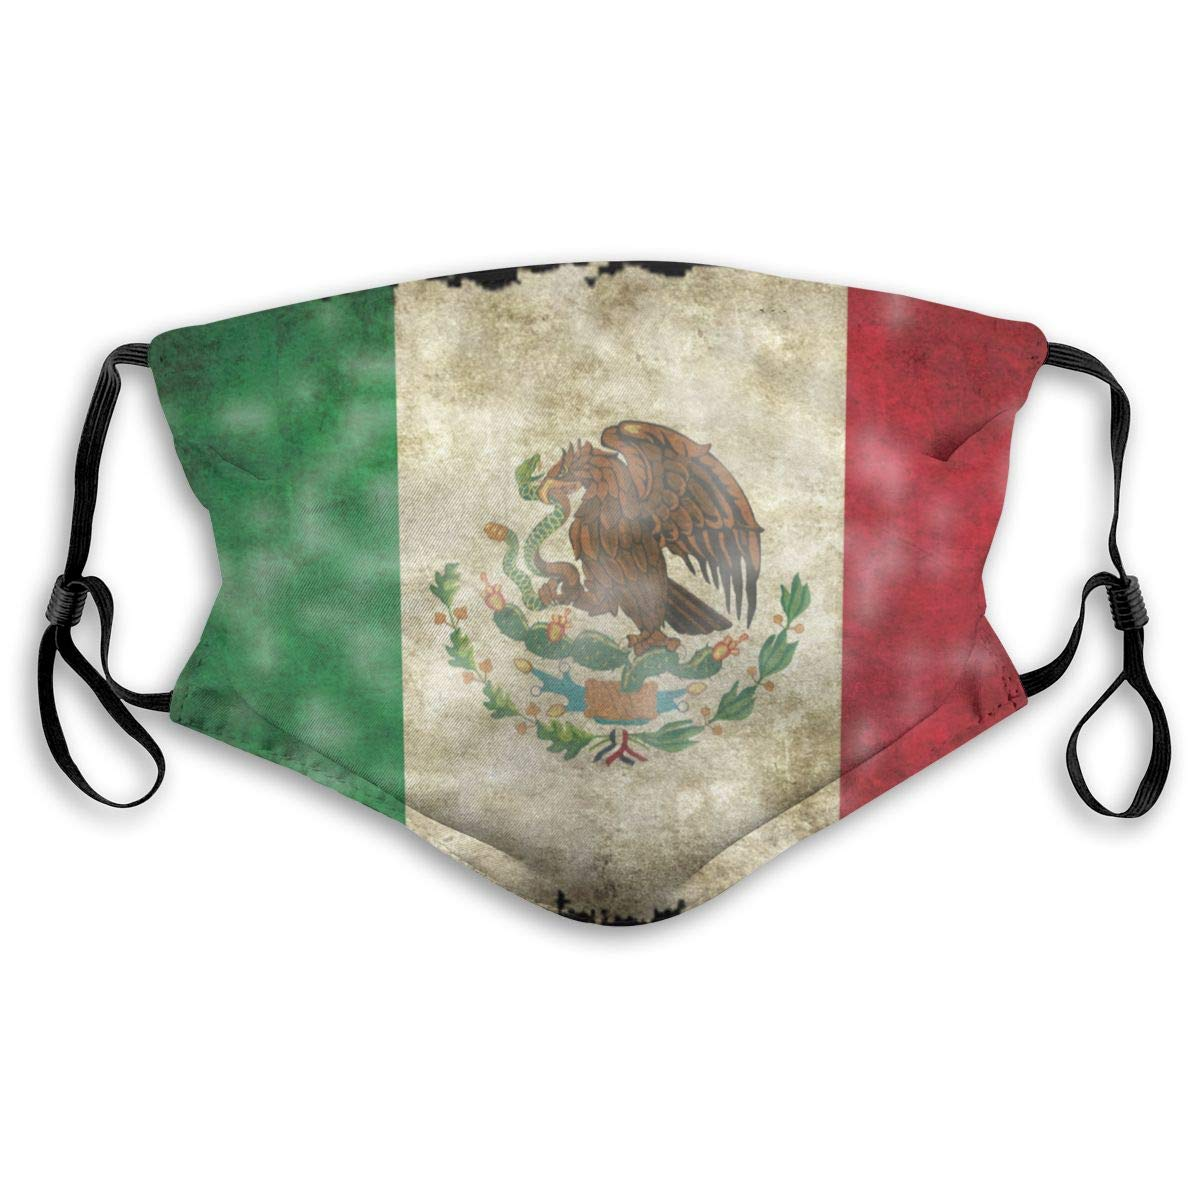 Mexico Flag Washable Reusable Mask, Anti Dust Half Face Mouth Mask For Kids Teens Men Women With Adjustable Ear Loops